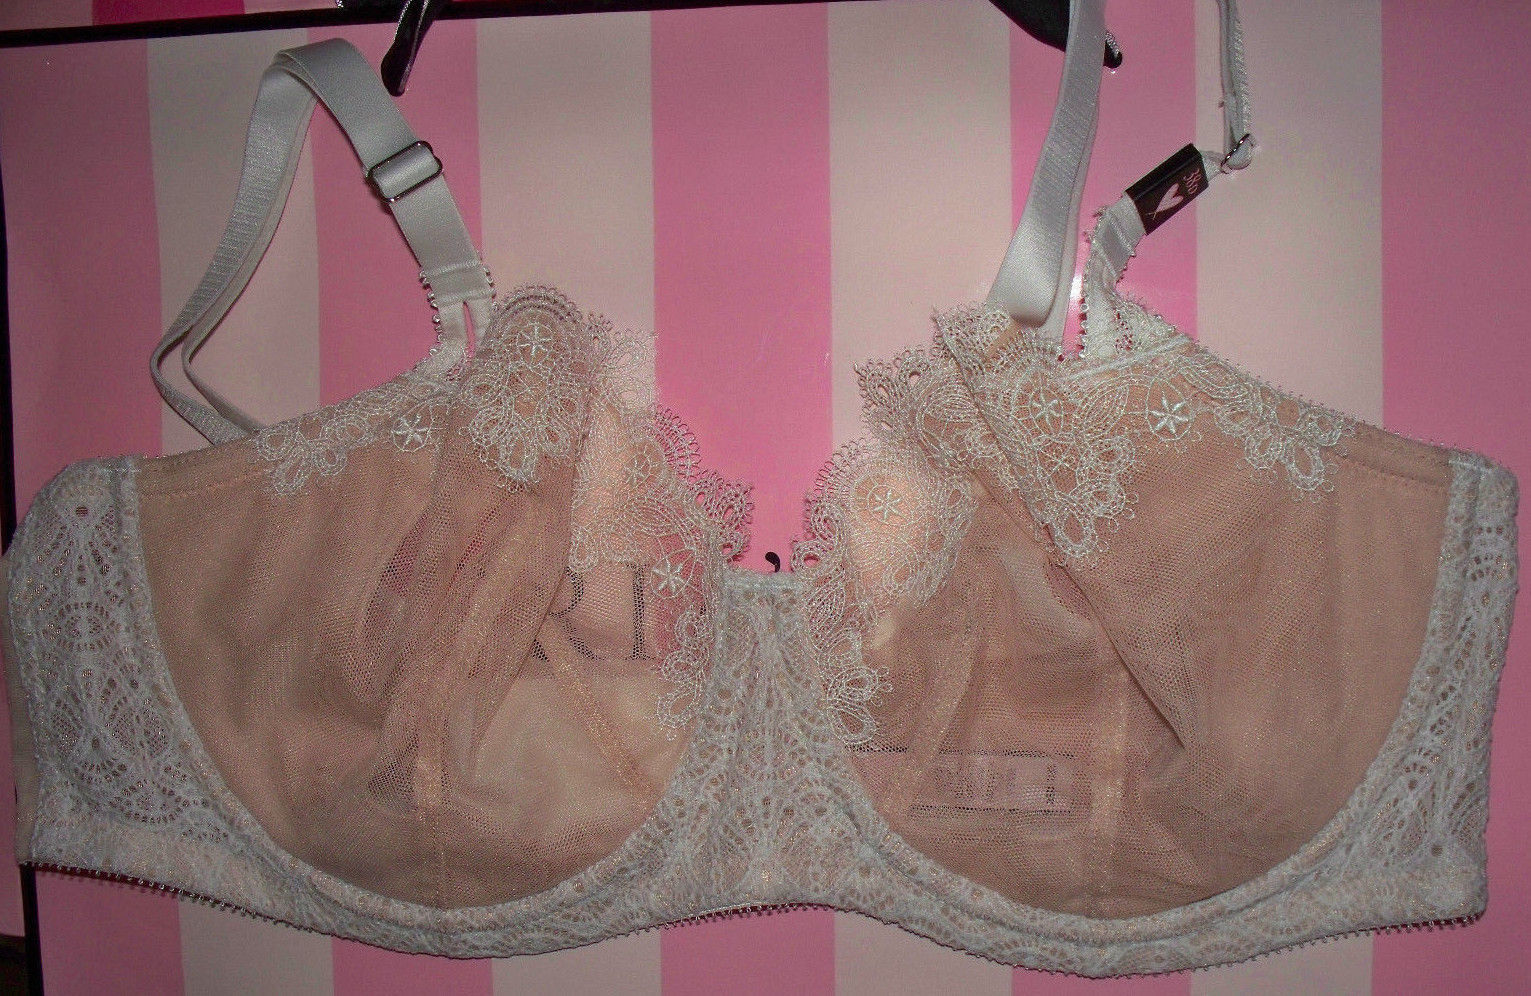 38D  Cream w Nude WICKED Dream Angels UPLIFT PushUp wo pad Victorias Secret Bra